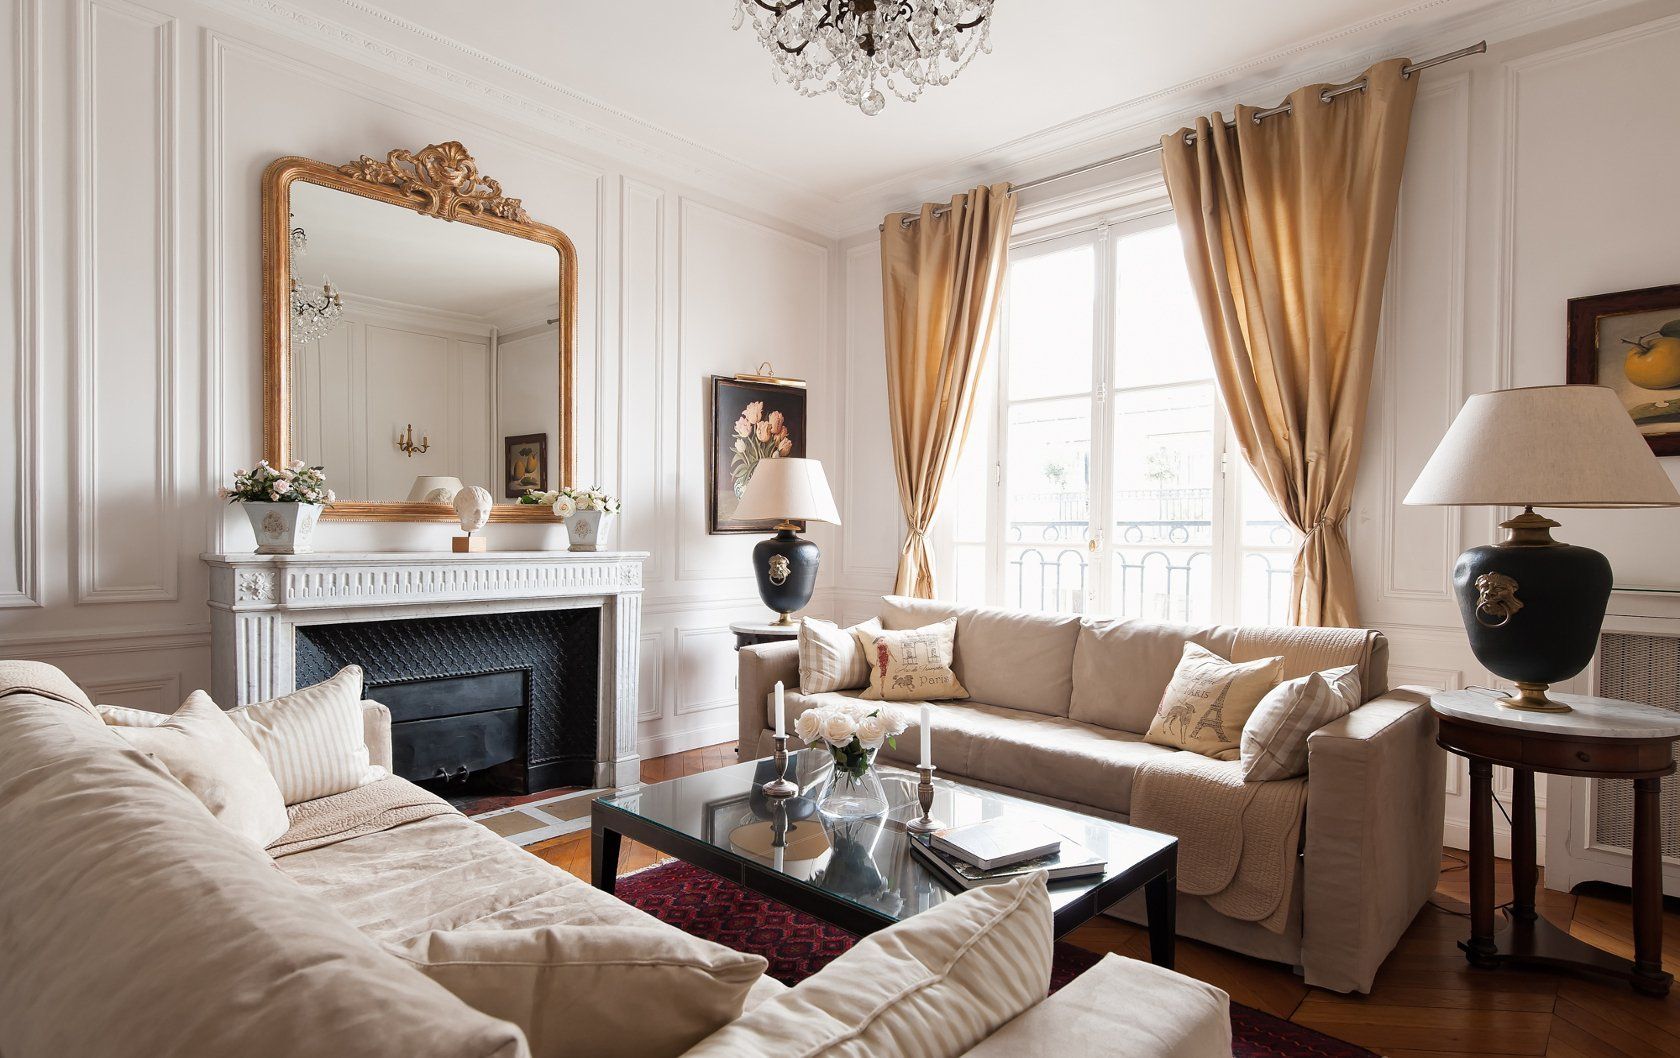 French Design How To Easily Make Your Home Feel Parisian Paris Perfect